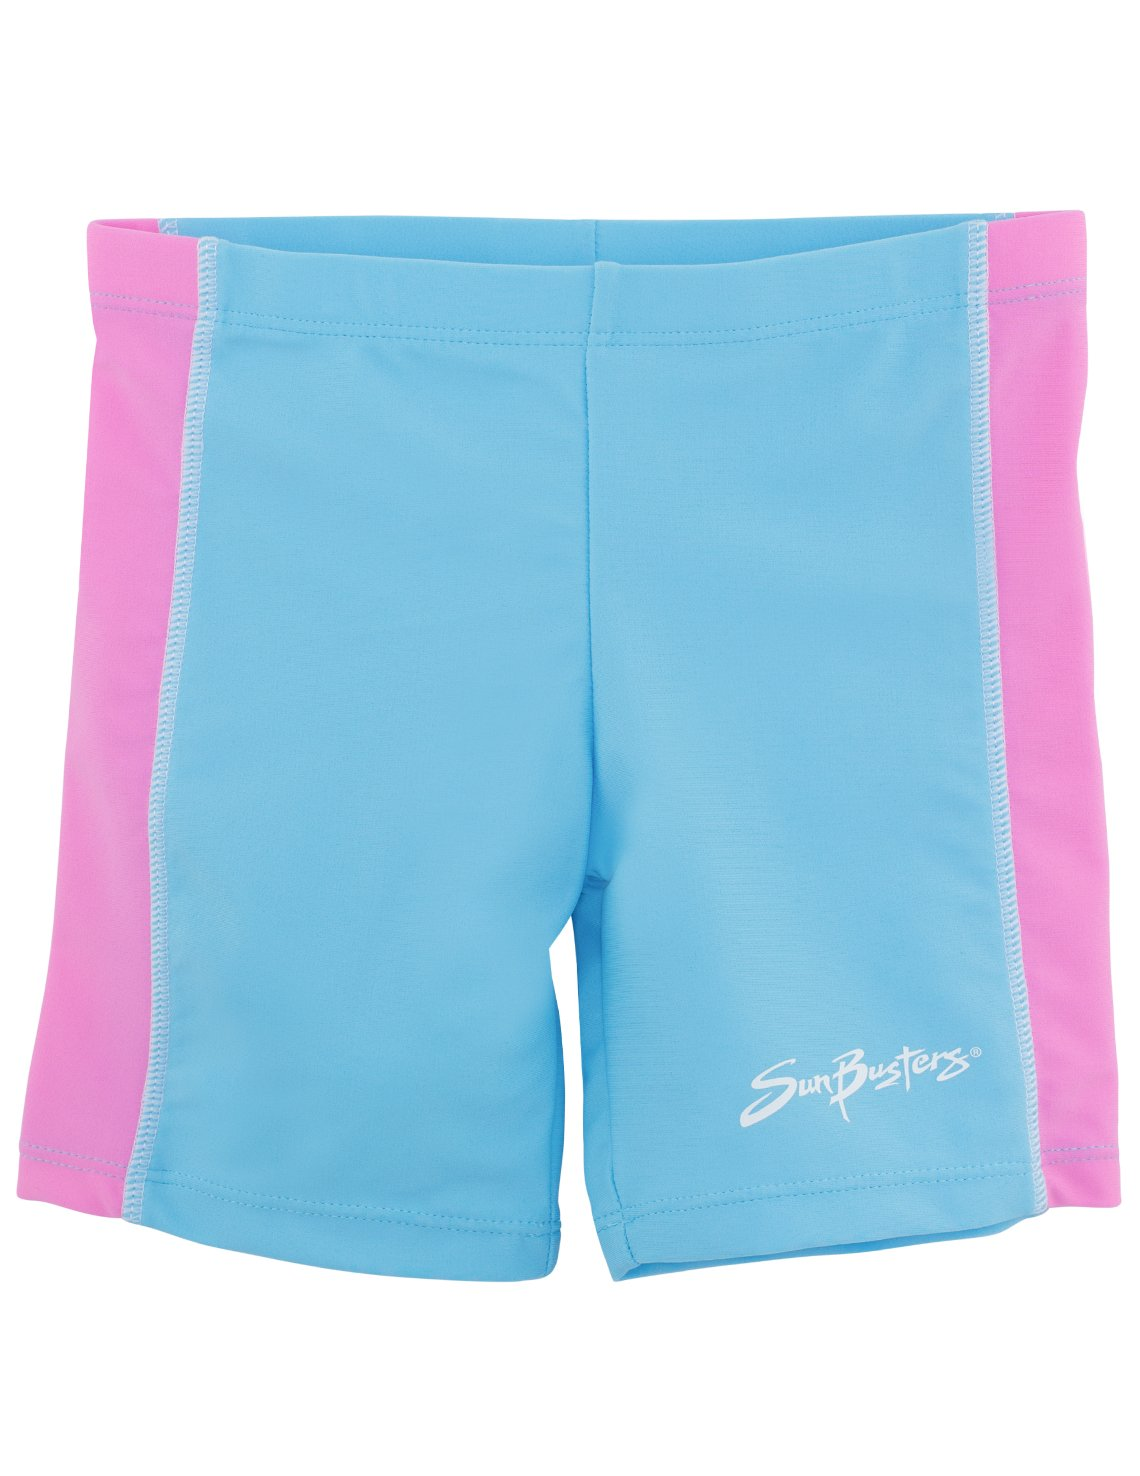 SunBusters Girls Swim Shorts(UPF 50+), Mallow, 8/10 yrs